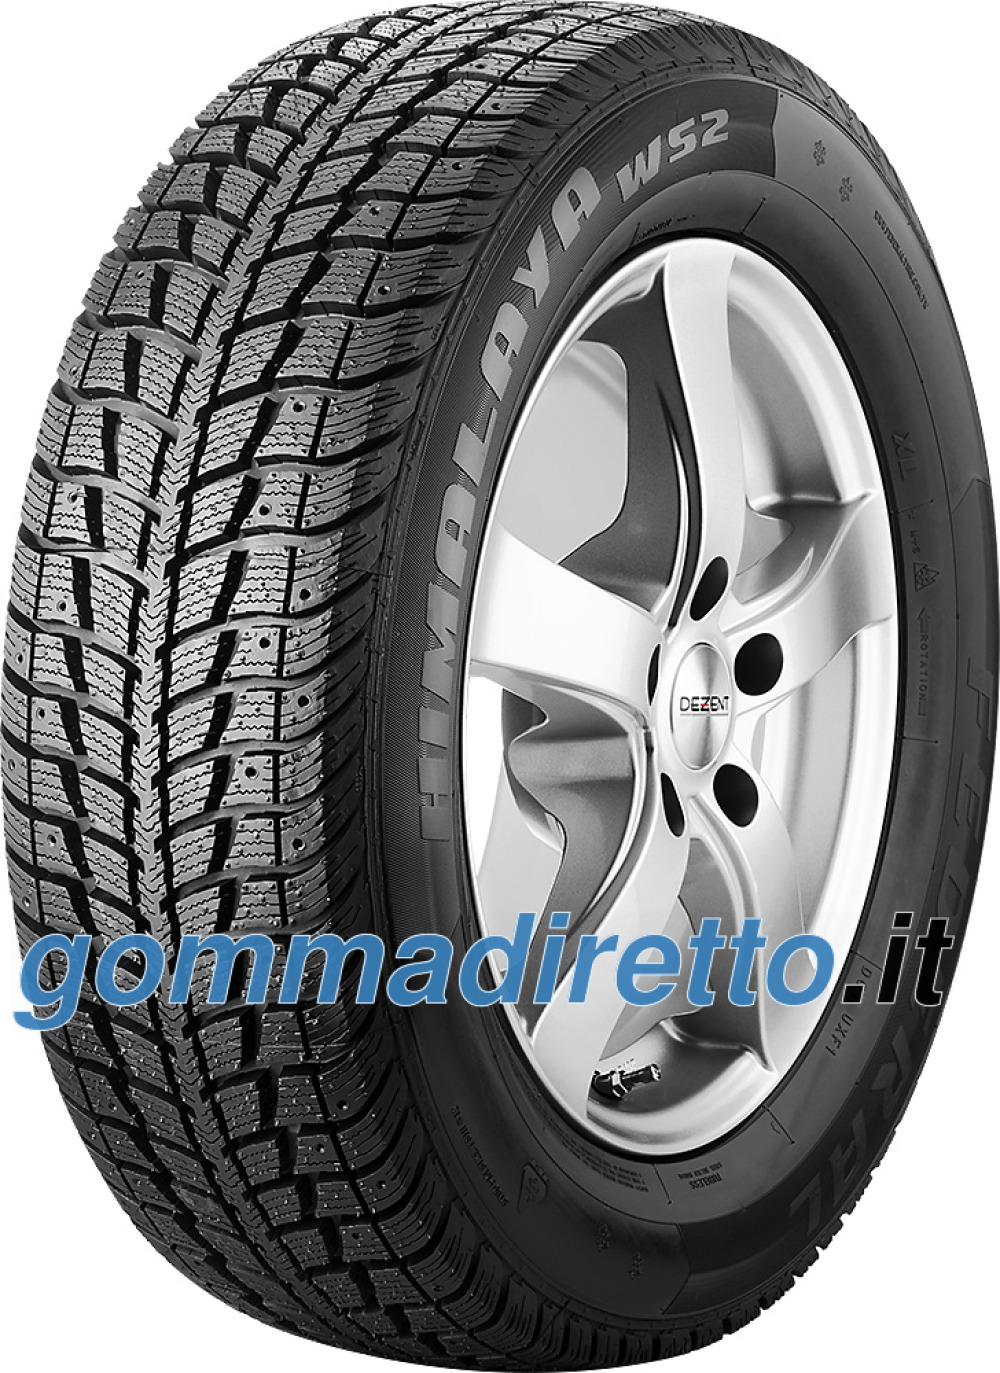 Image of Cooper Weather-Master WSC ( 235/75 R15 109T XL, pneumatico chiodato )